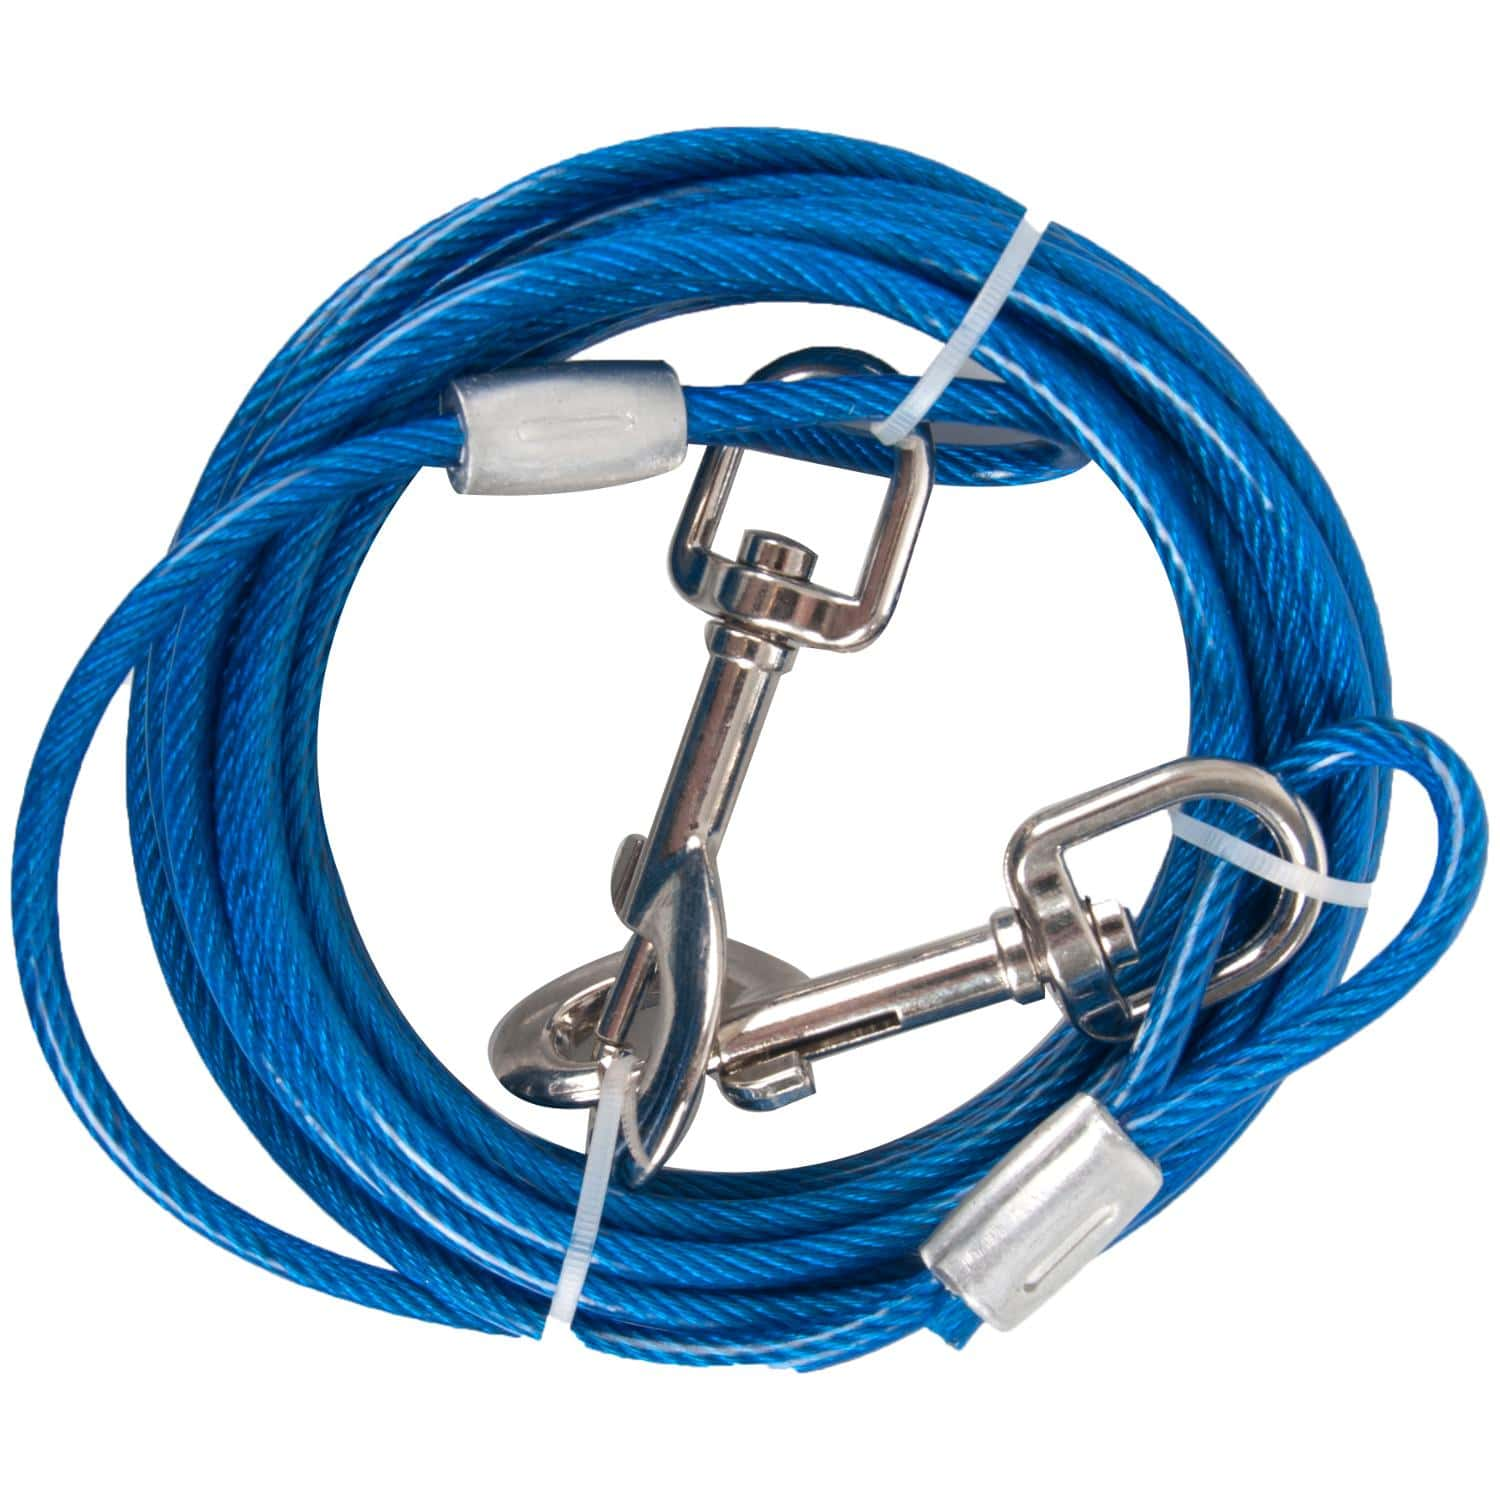 Cable d'attache bleu